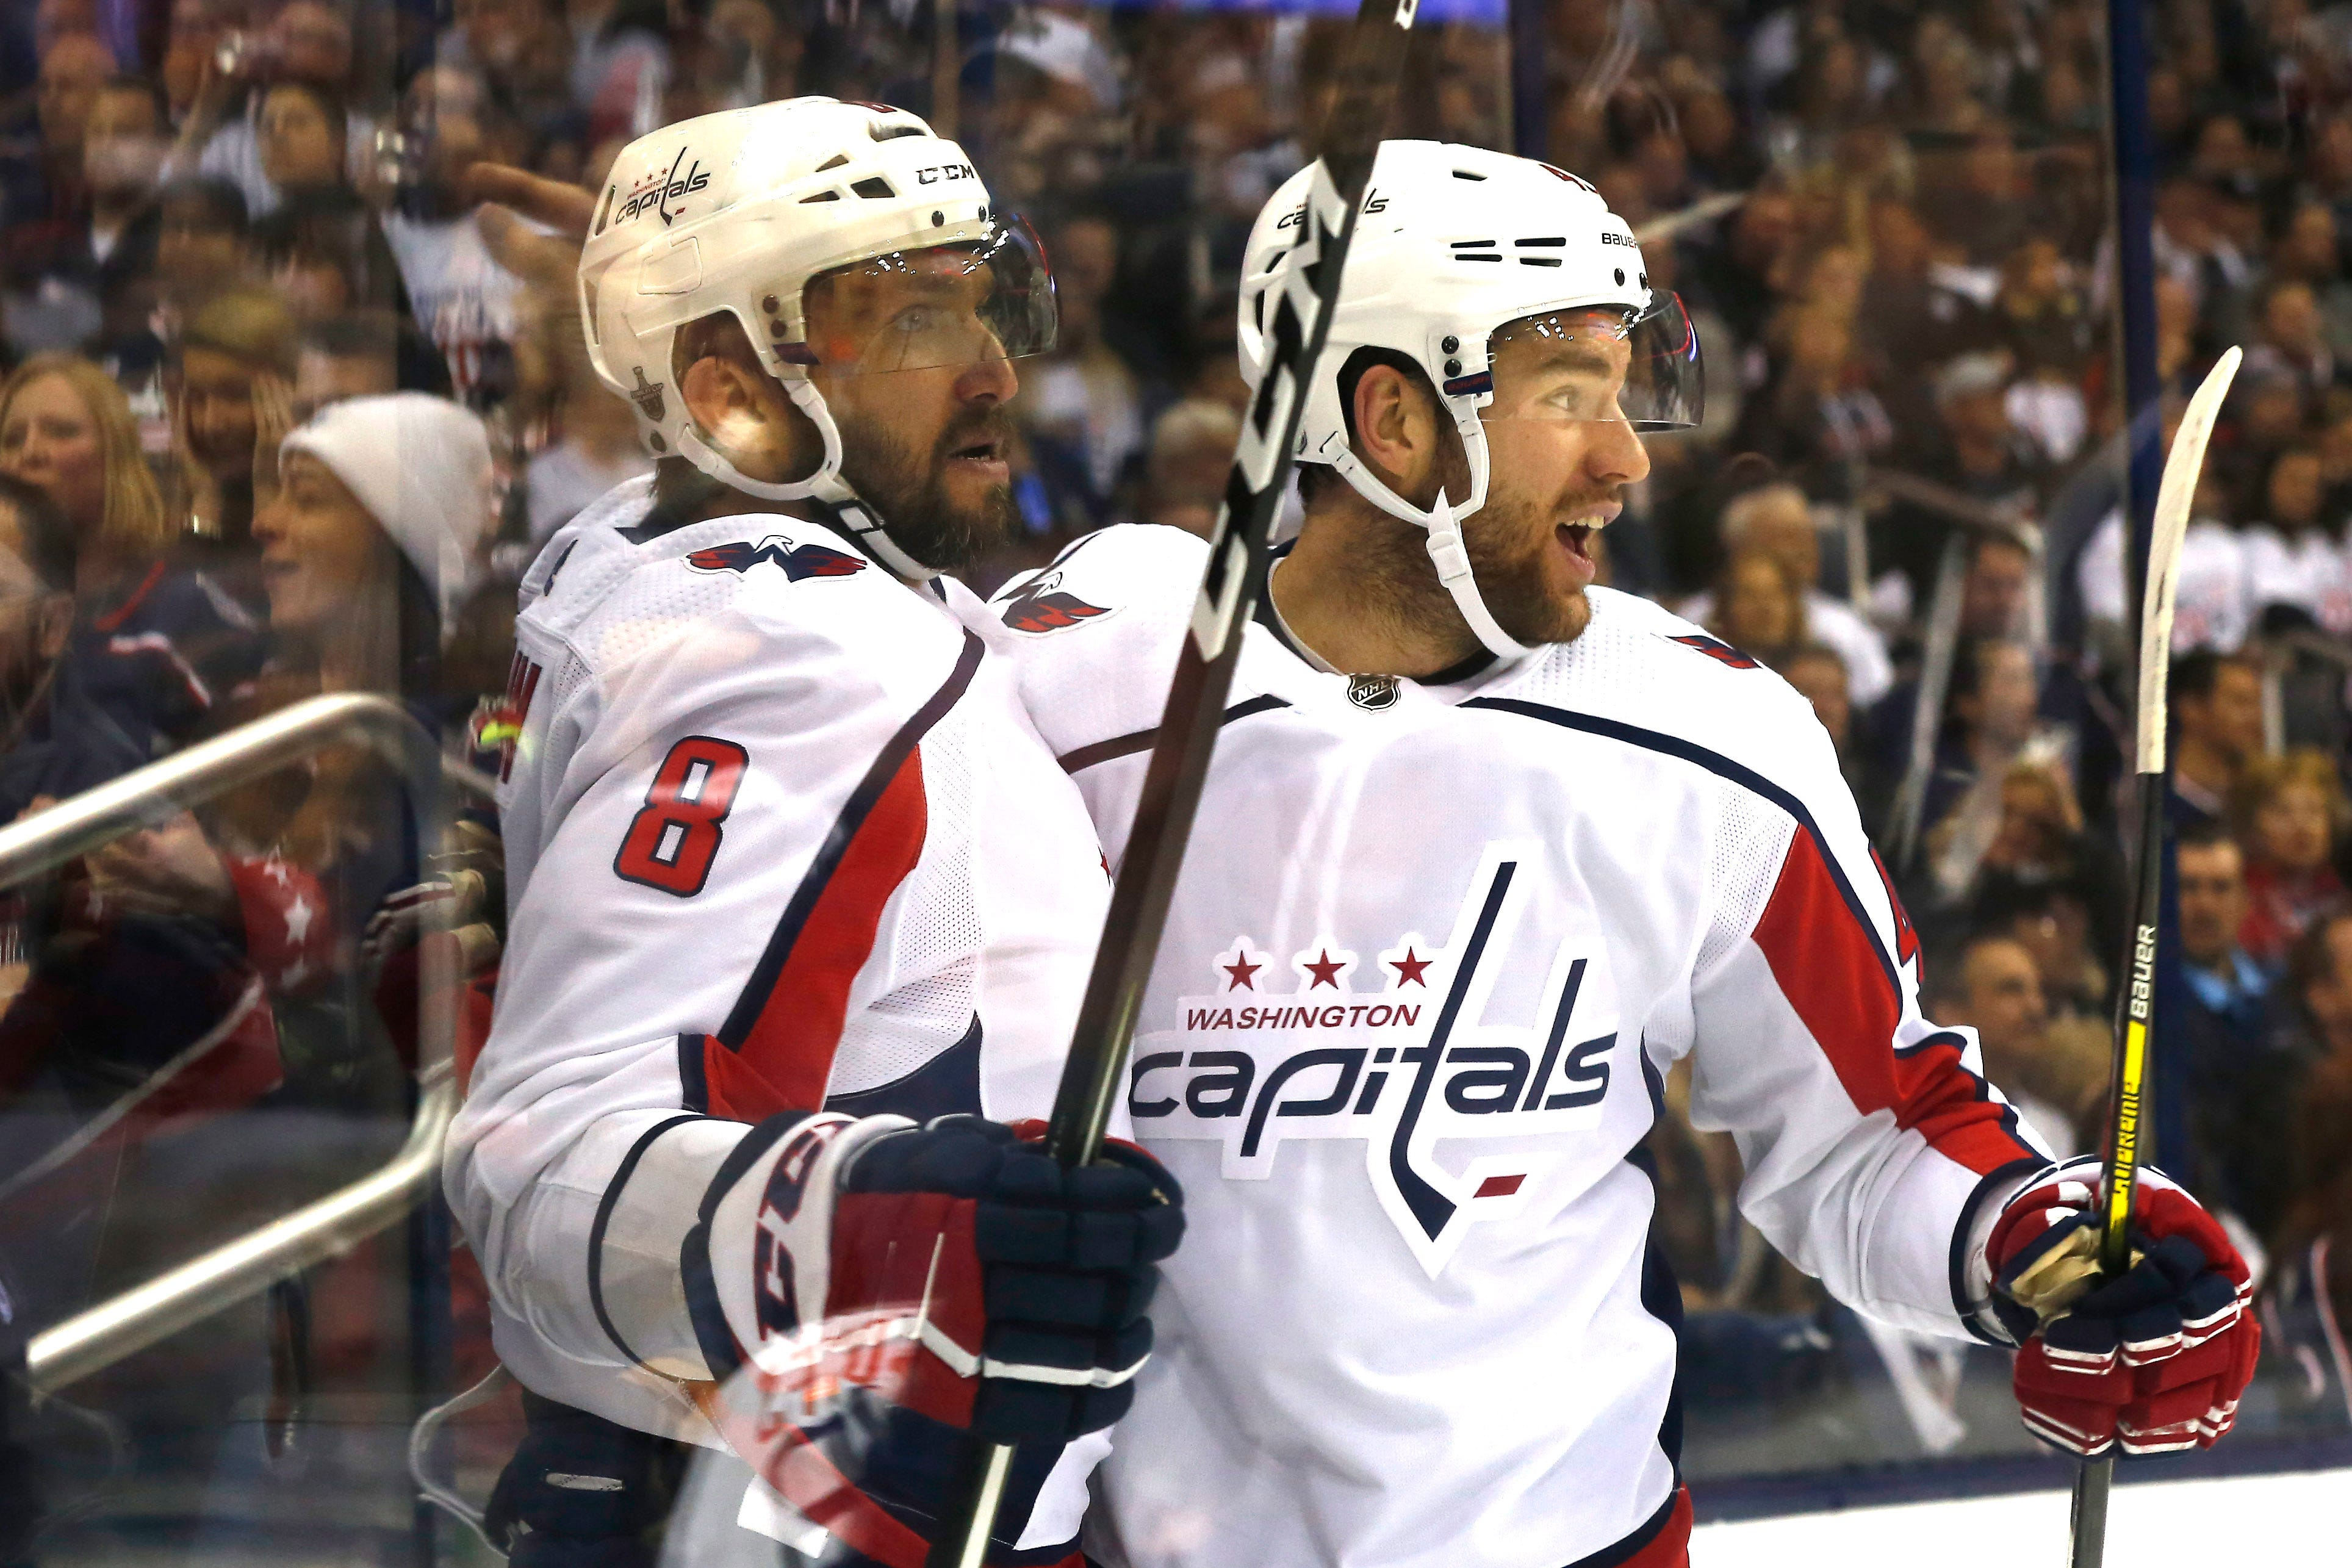 73a4ab595 Capitals advance with 6-3 win against Blue Jackets Alex Ovechkin scored  twice and the Washington Capitals advanced to the Eastern Conference  semifinals. a ...